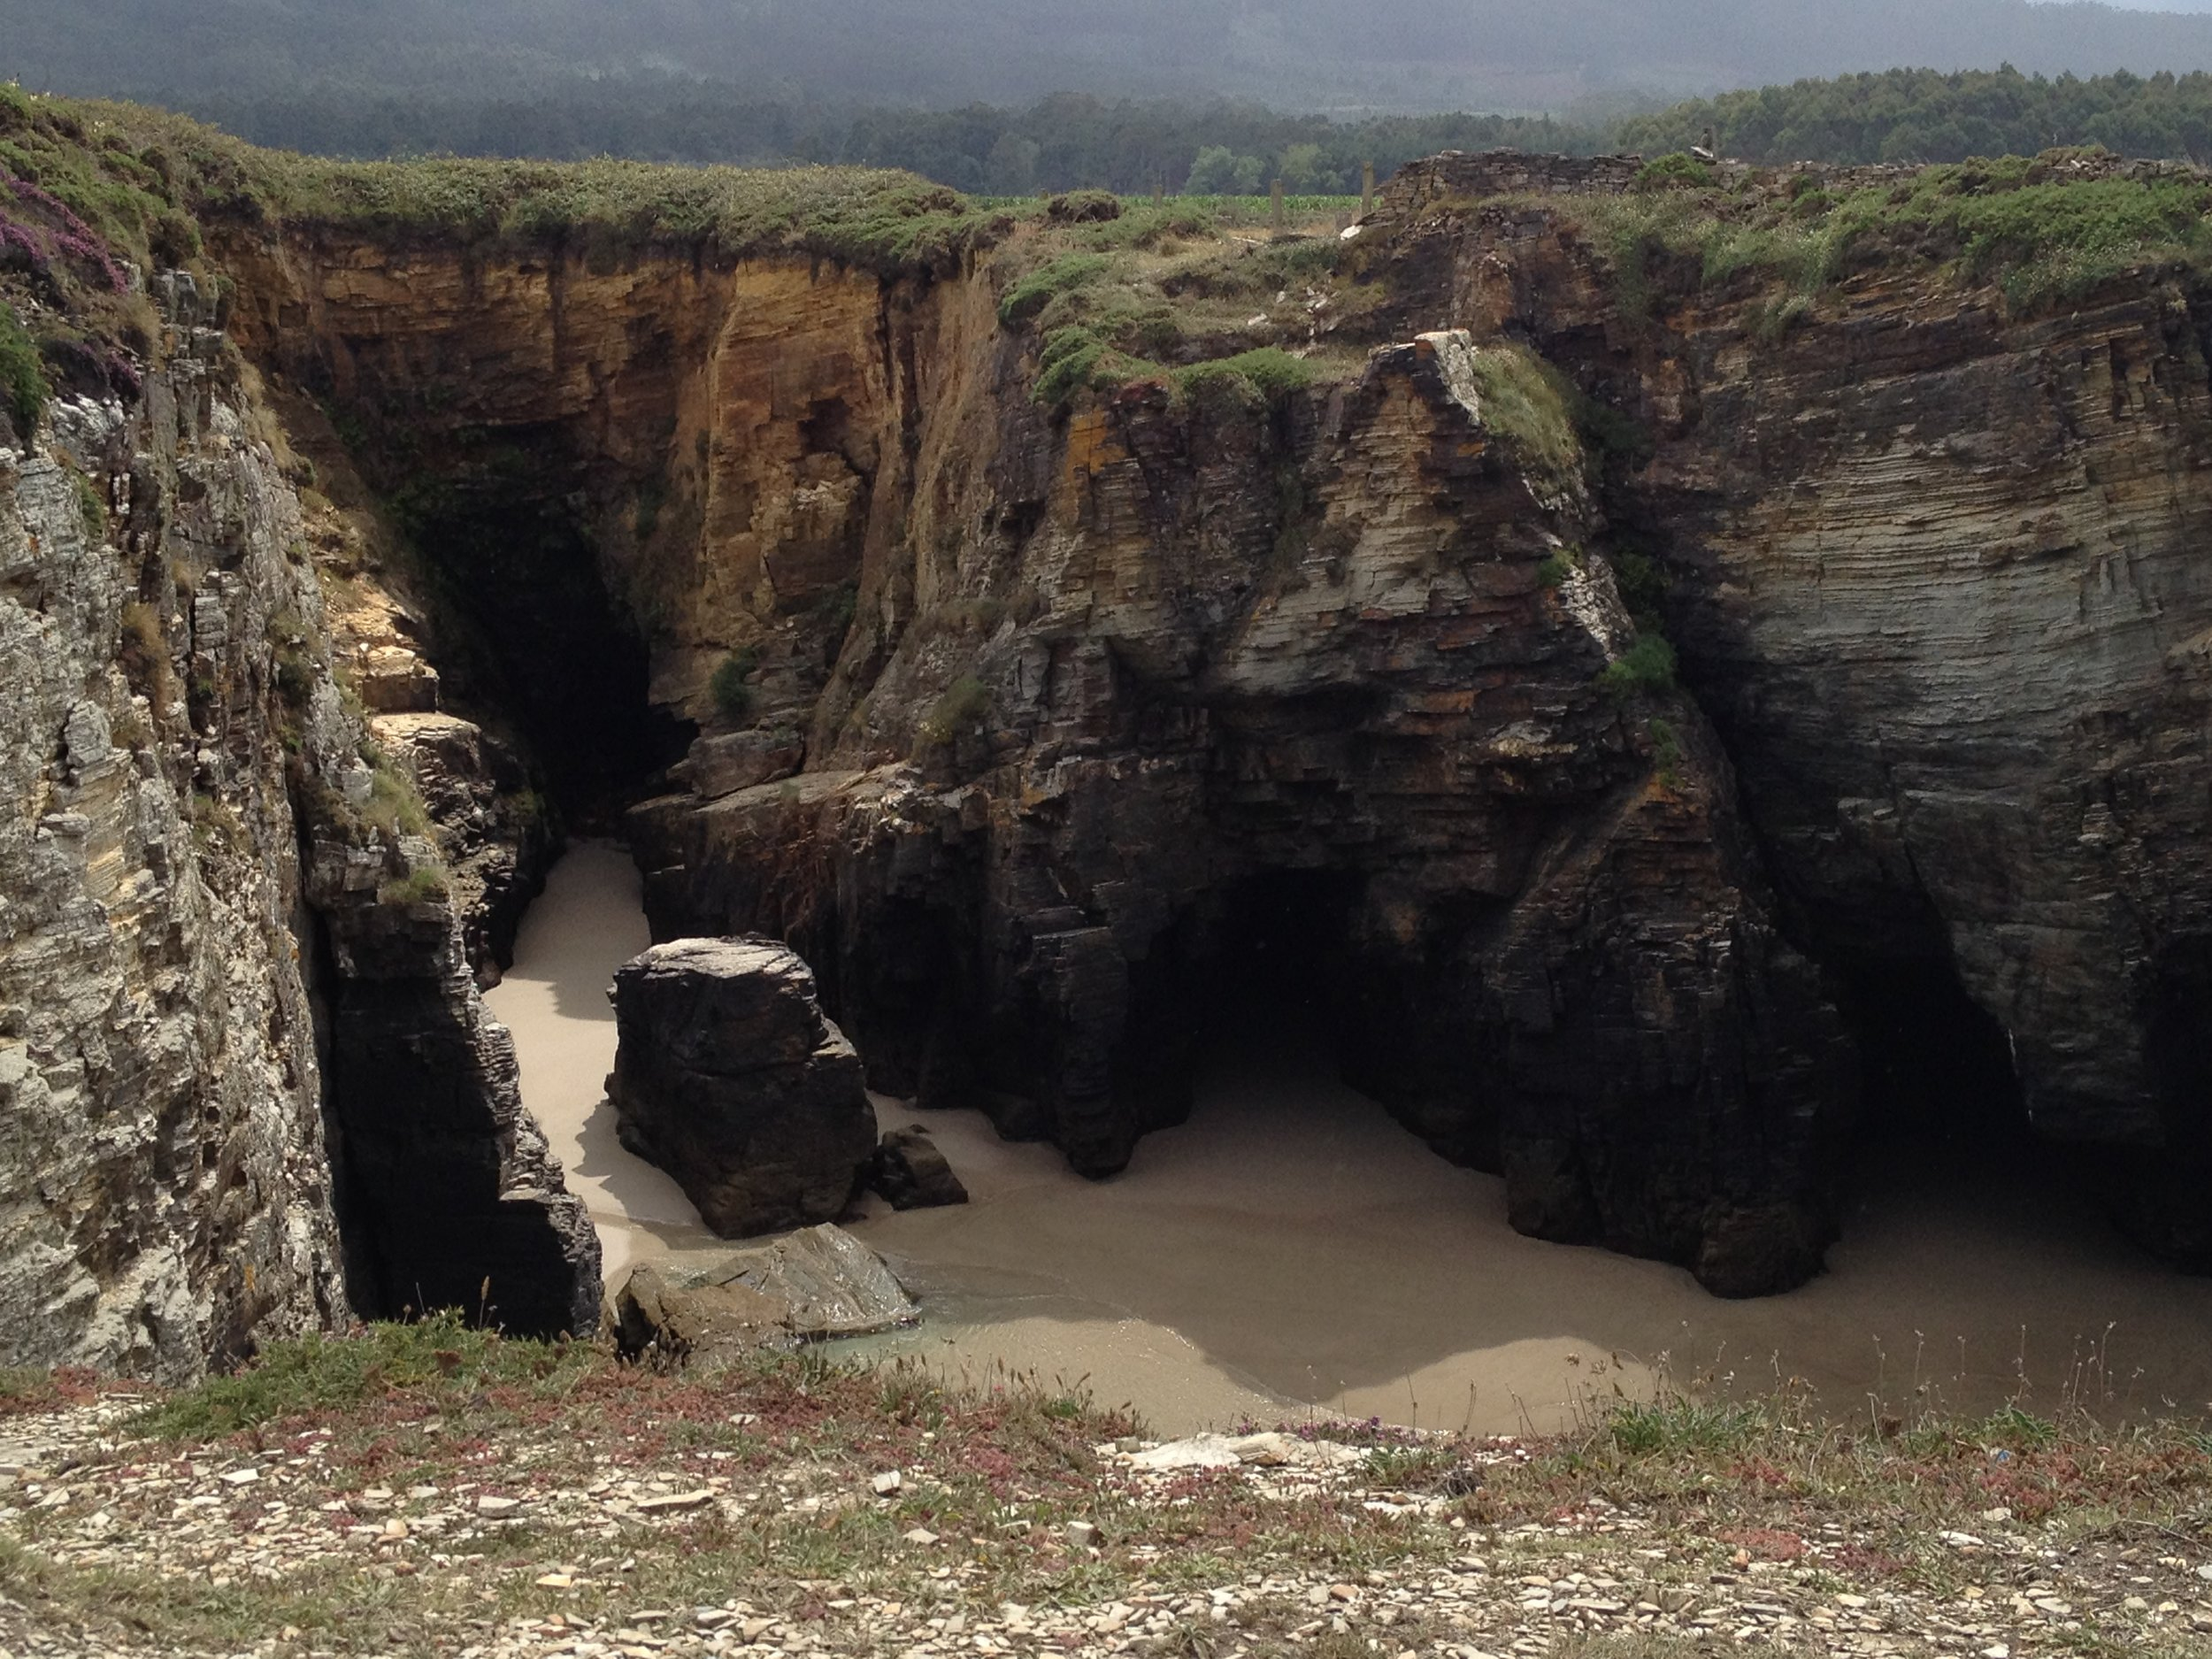 Walking along the path above we got a bird's-eye view of the rock formations and caves carved out by the powerful surf.